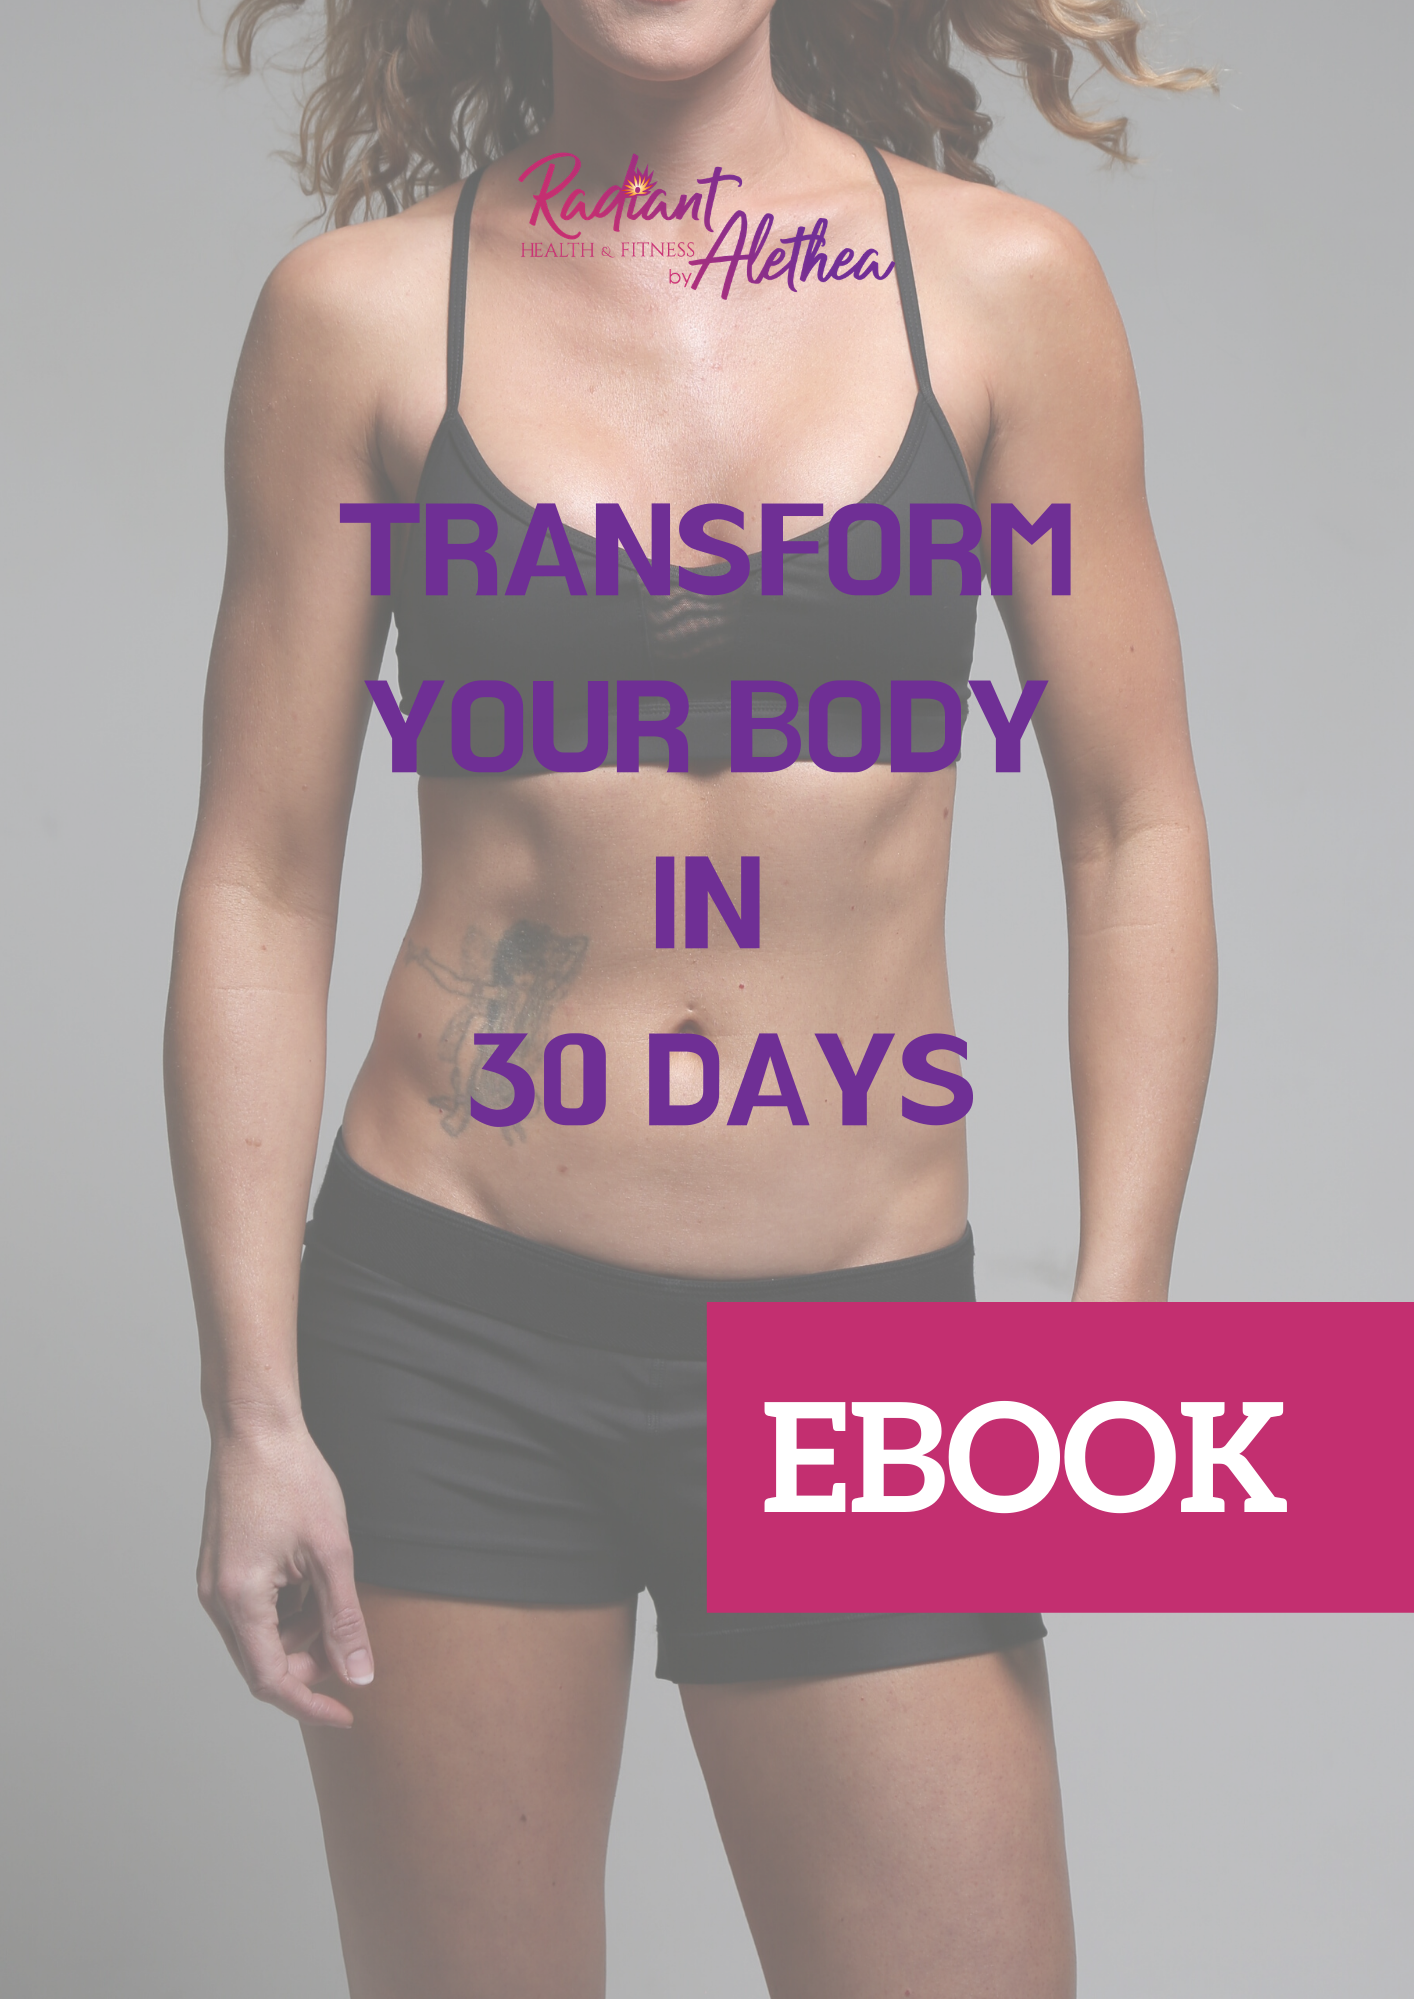 RESIZED IMAGES 1 for Transform Your Body in 30 Days